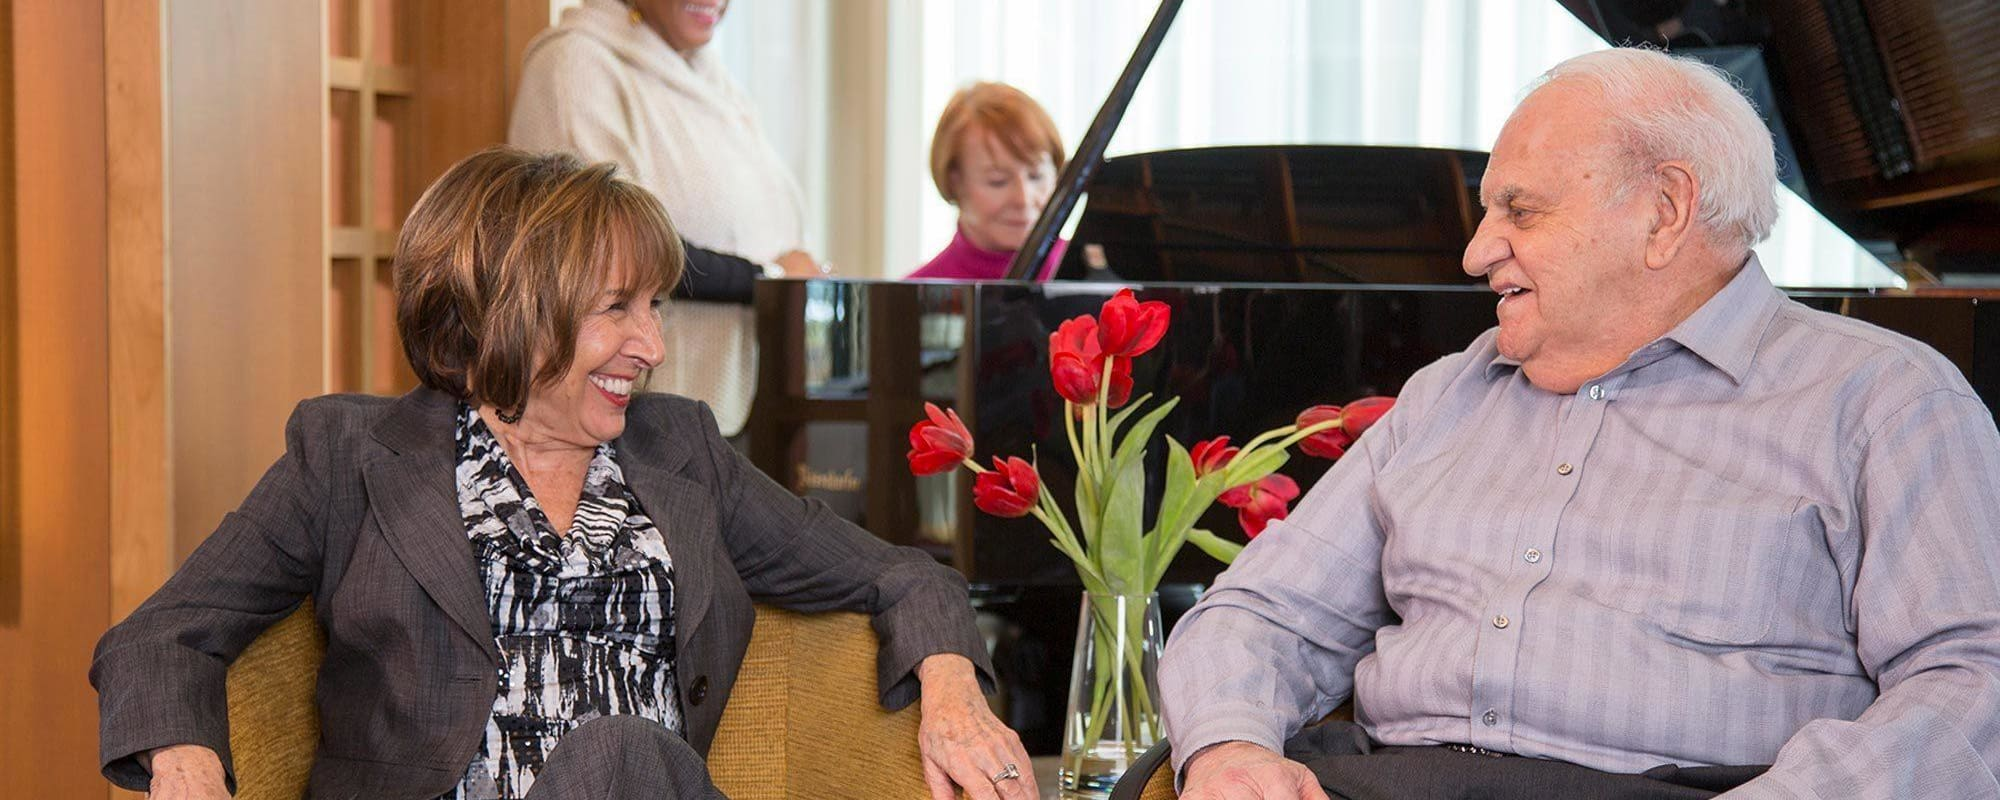 Senior living in Rochester Hills, Michigan at All Seasons Rochester Hills